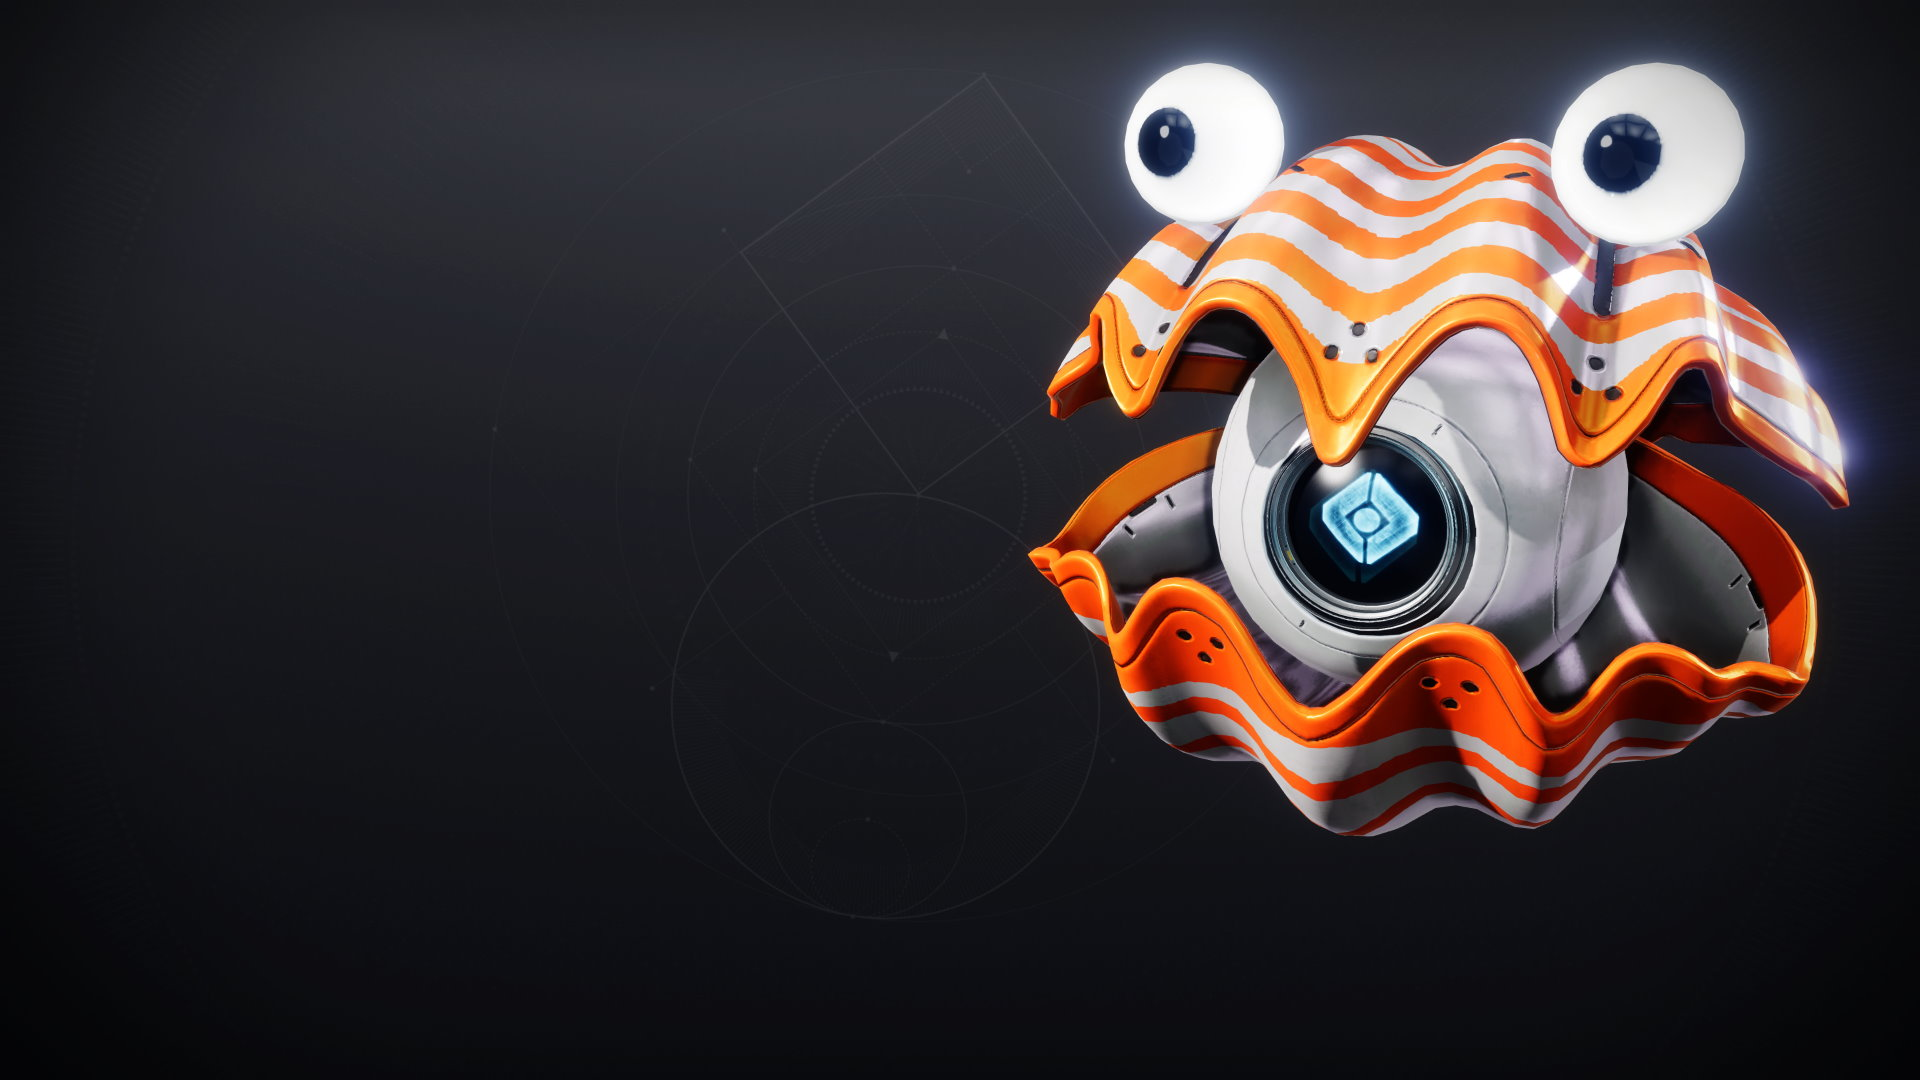 An in-game render of the Ghoyster.